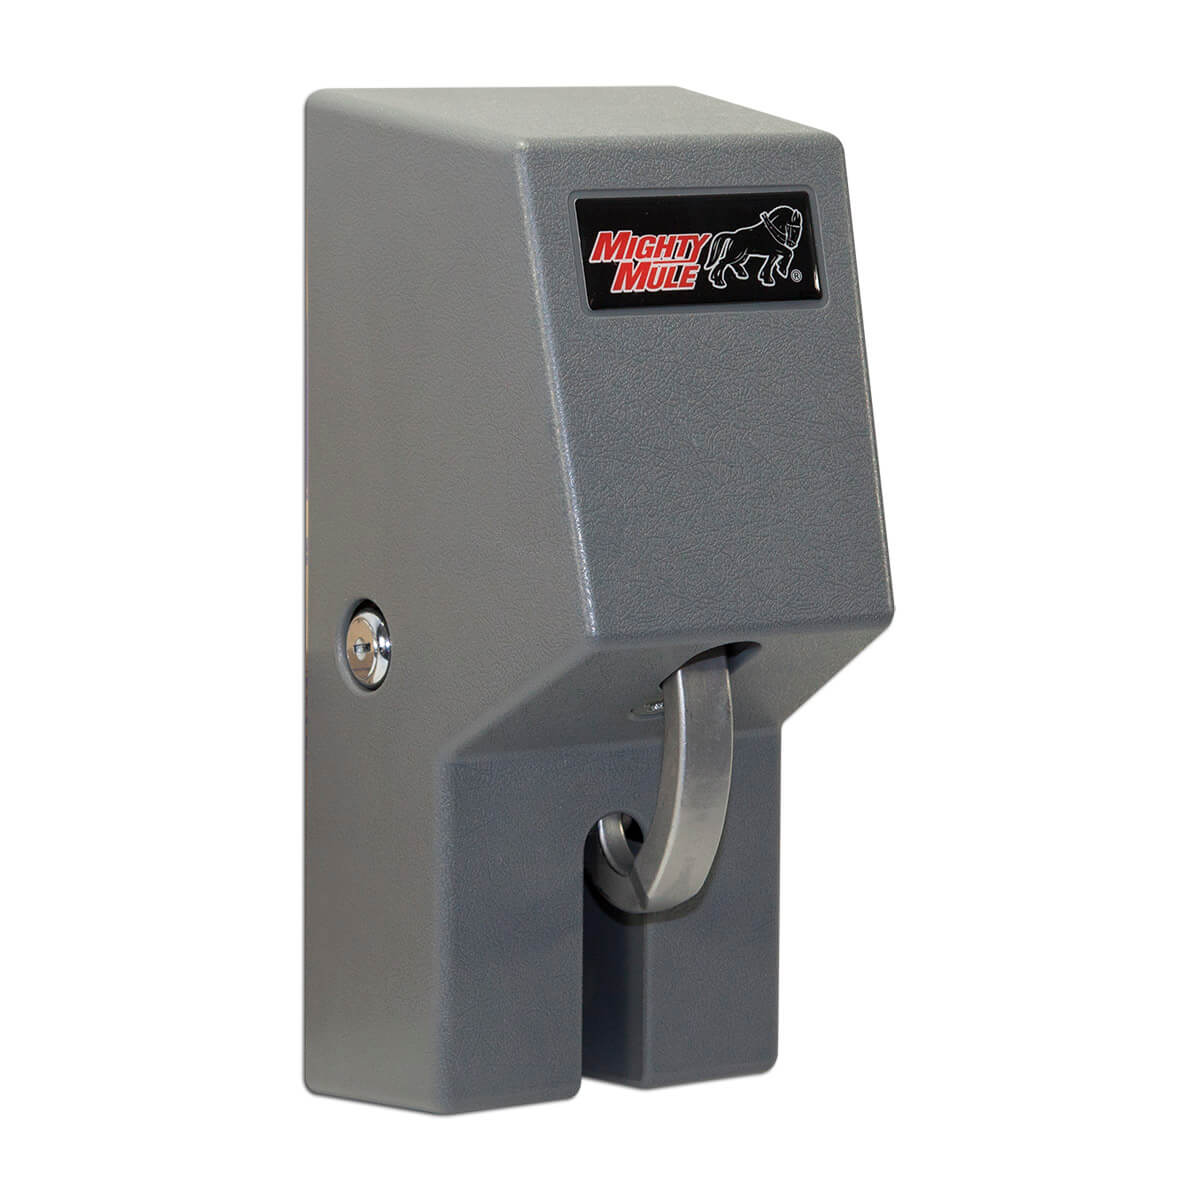 Mighty Mule Automatic Gate Opener System Accessories